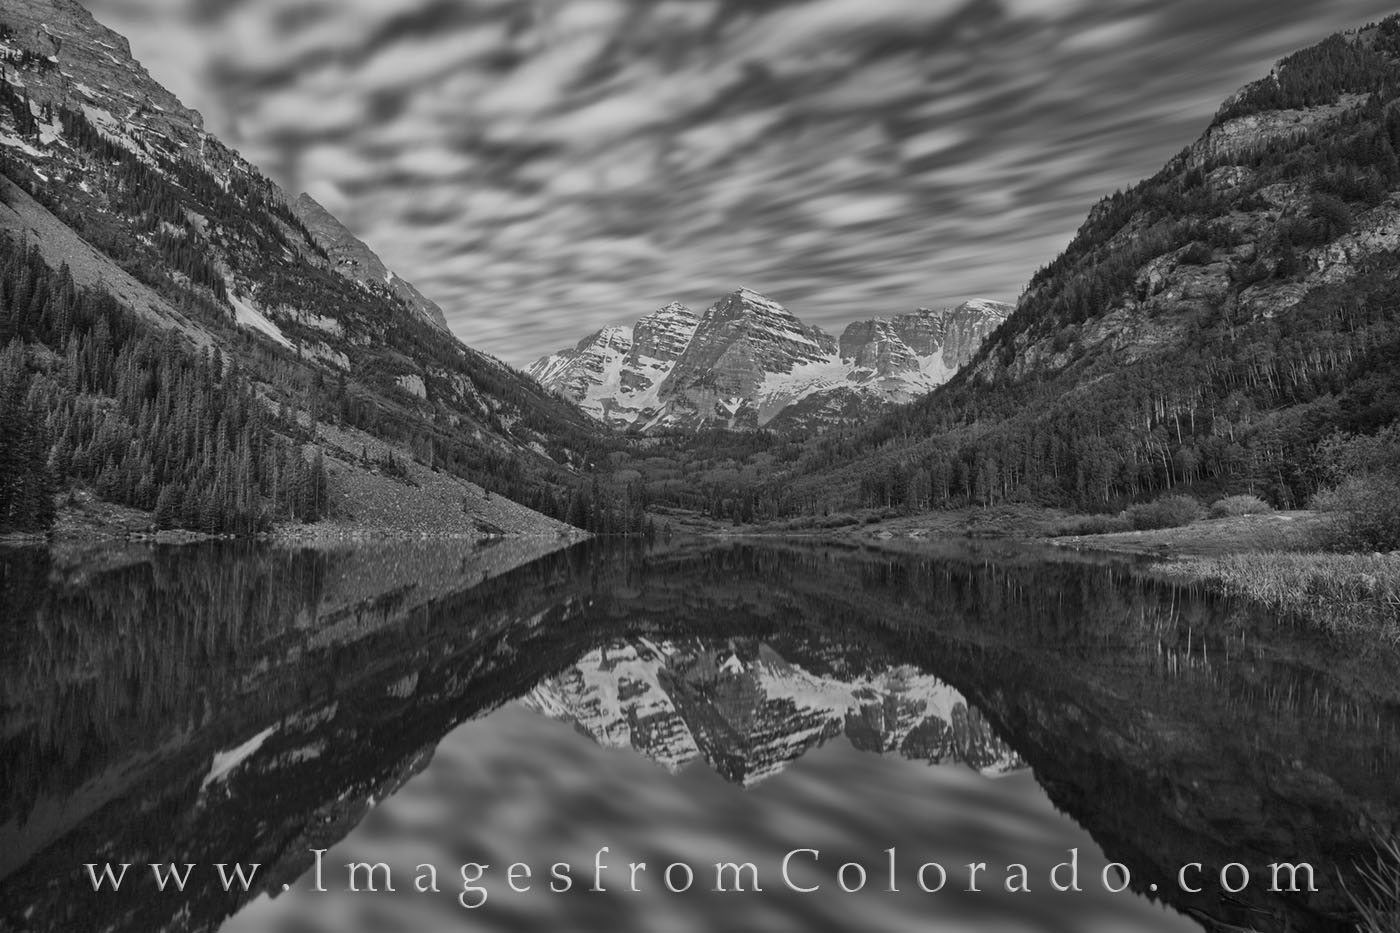 In this 135 second exposure from Maroon Lake in the Maroon Bells Wilderness area, clouds drift over the iconic 14ers, Maroon...